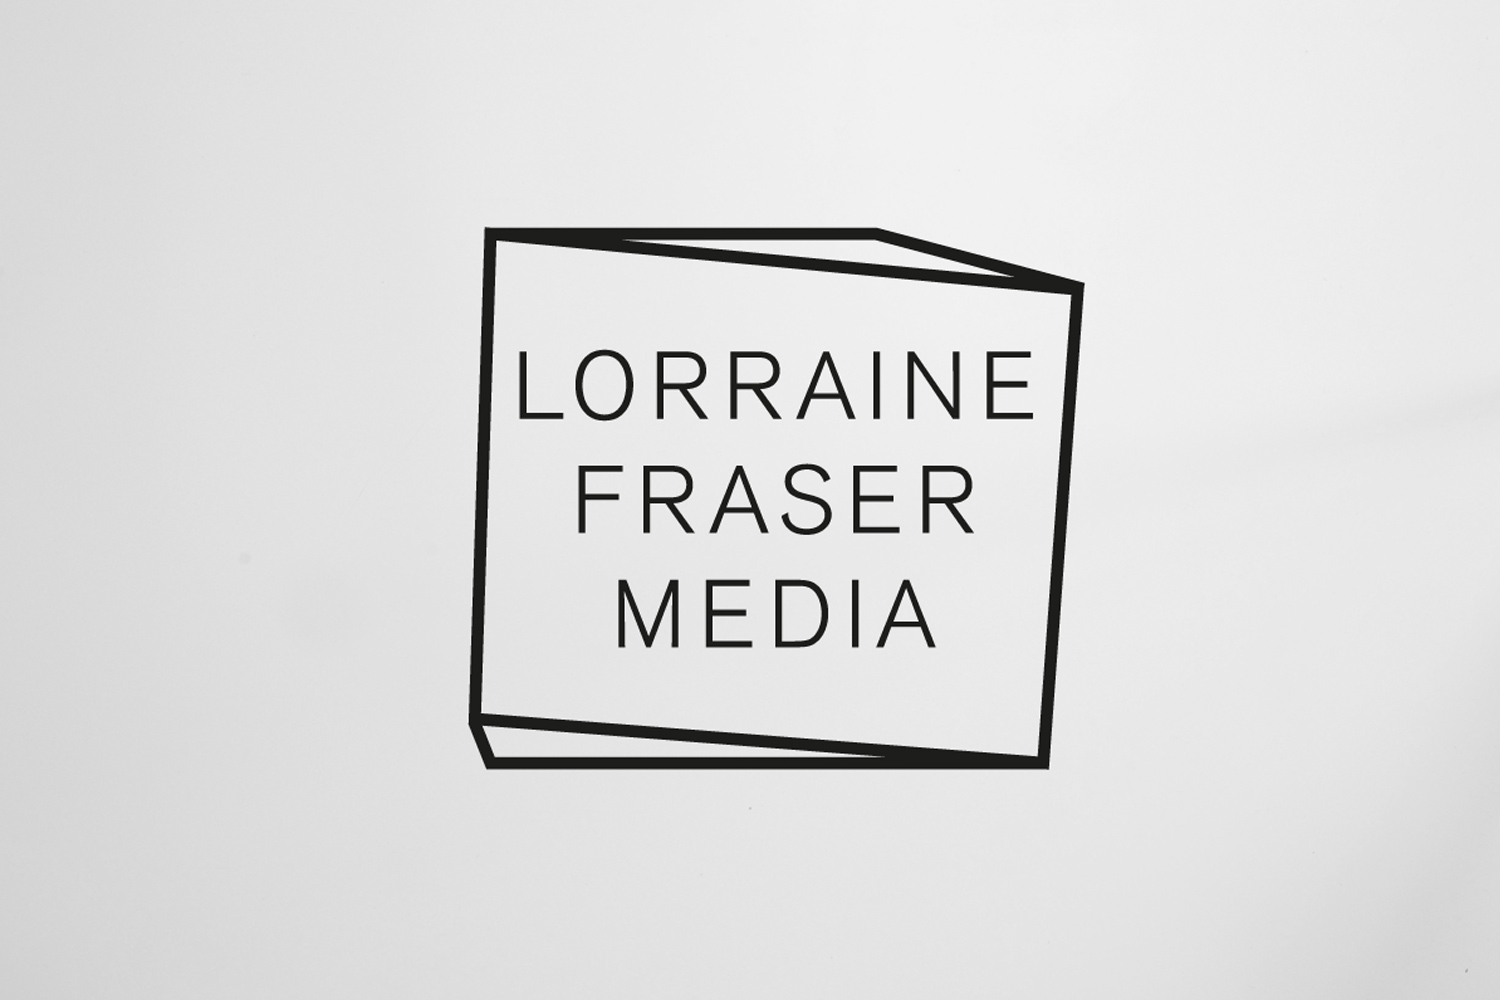 LORRAINE FRASER MEDIA UP TO YOU PROFESSIONAL SERVICES ART & CULTURE GRAPHIC DESIGN BRAND IDENTITY